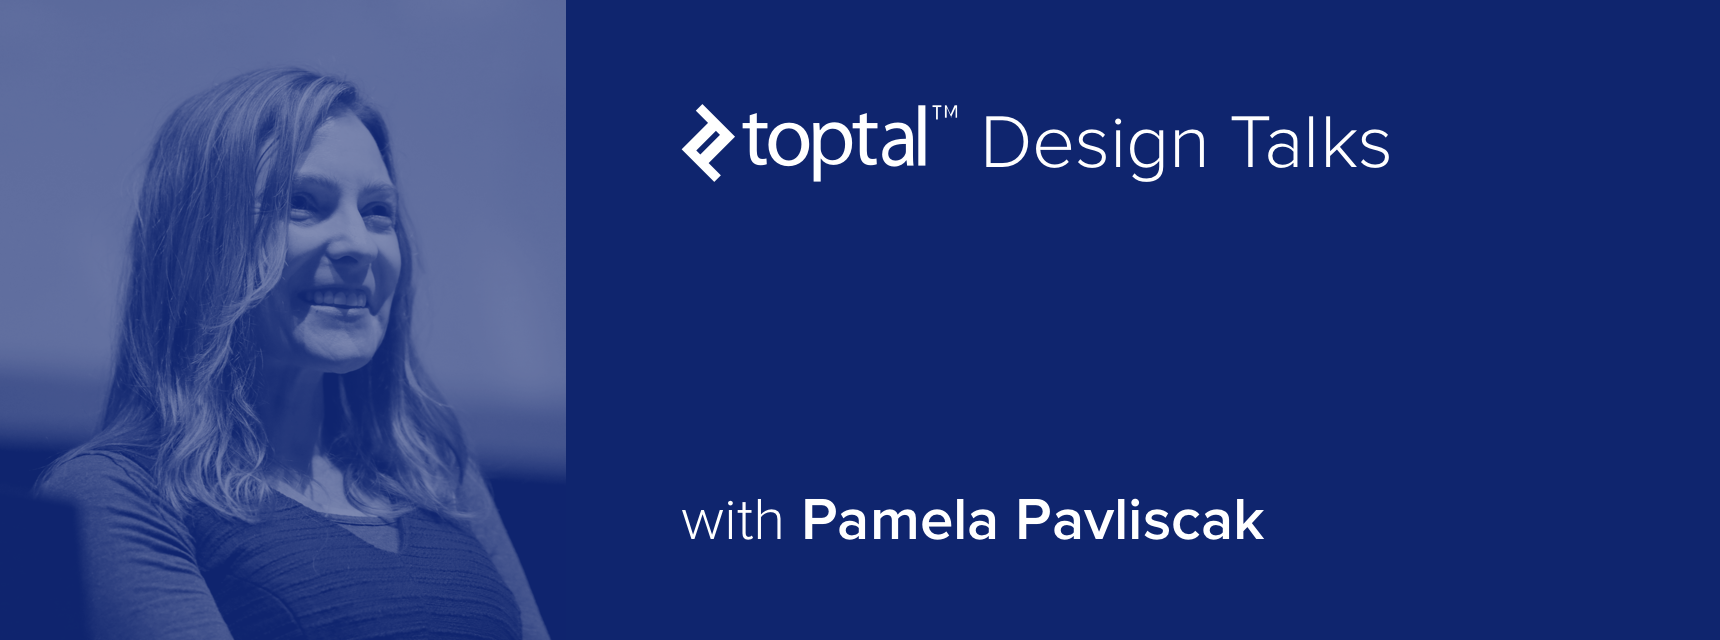 Toptal Design Talks with Pamela Pavilscak